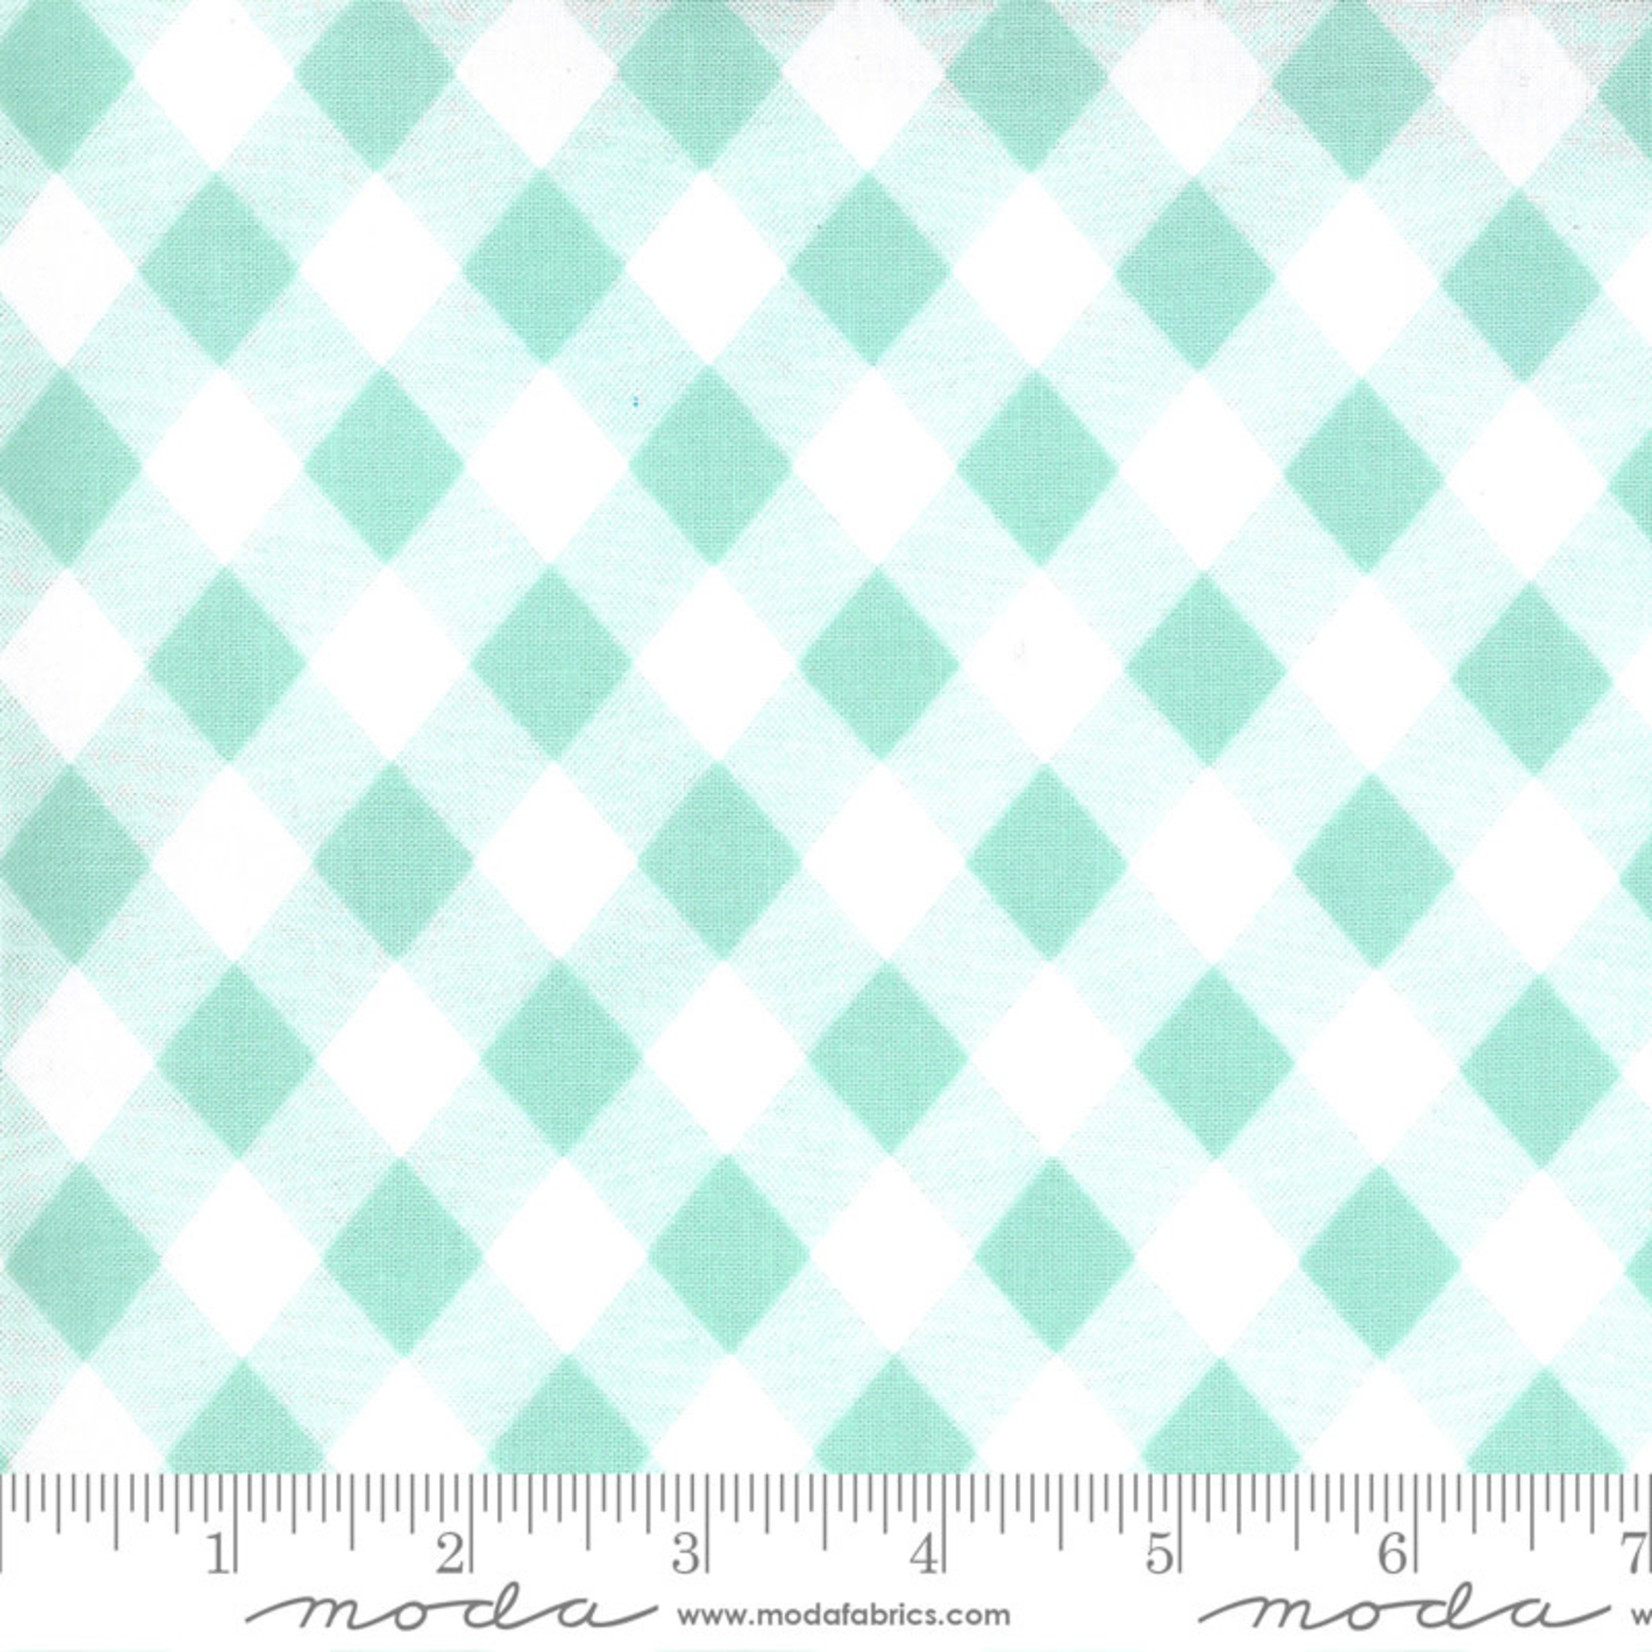 Bonnie & Camille Sunday Stroll, Picnic Gingham, Aqua 55227 14 $0.20 per cm or $20/m